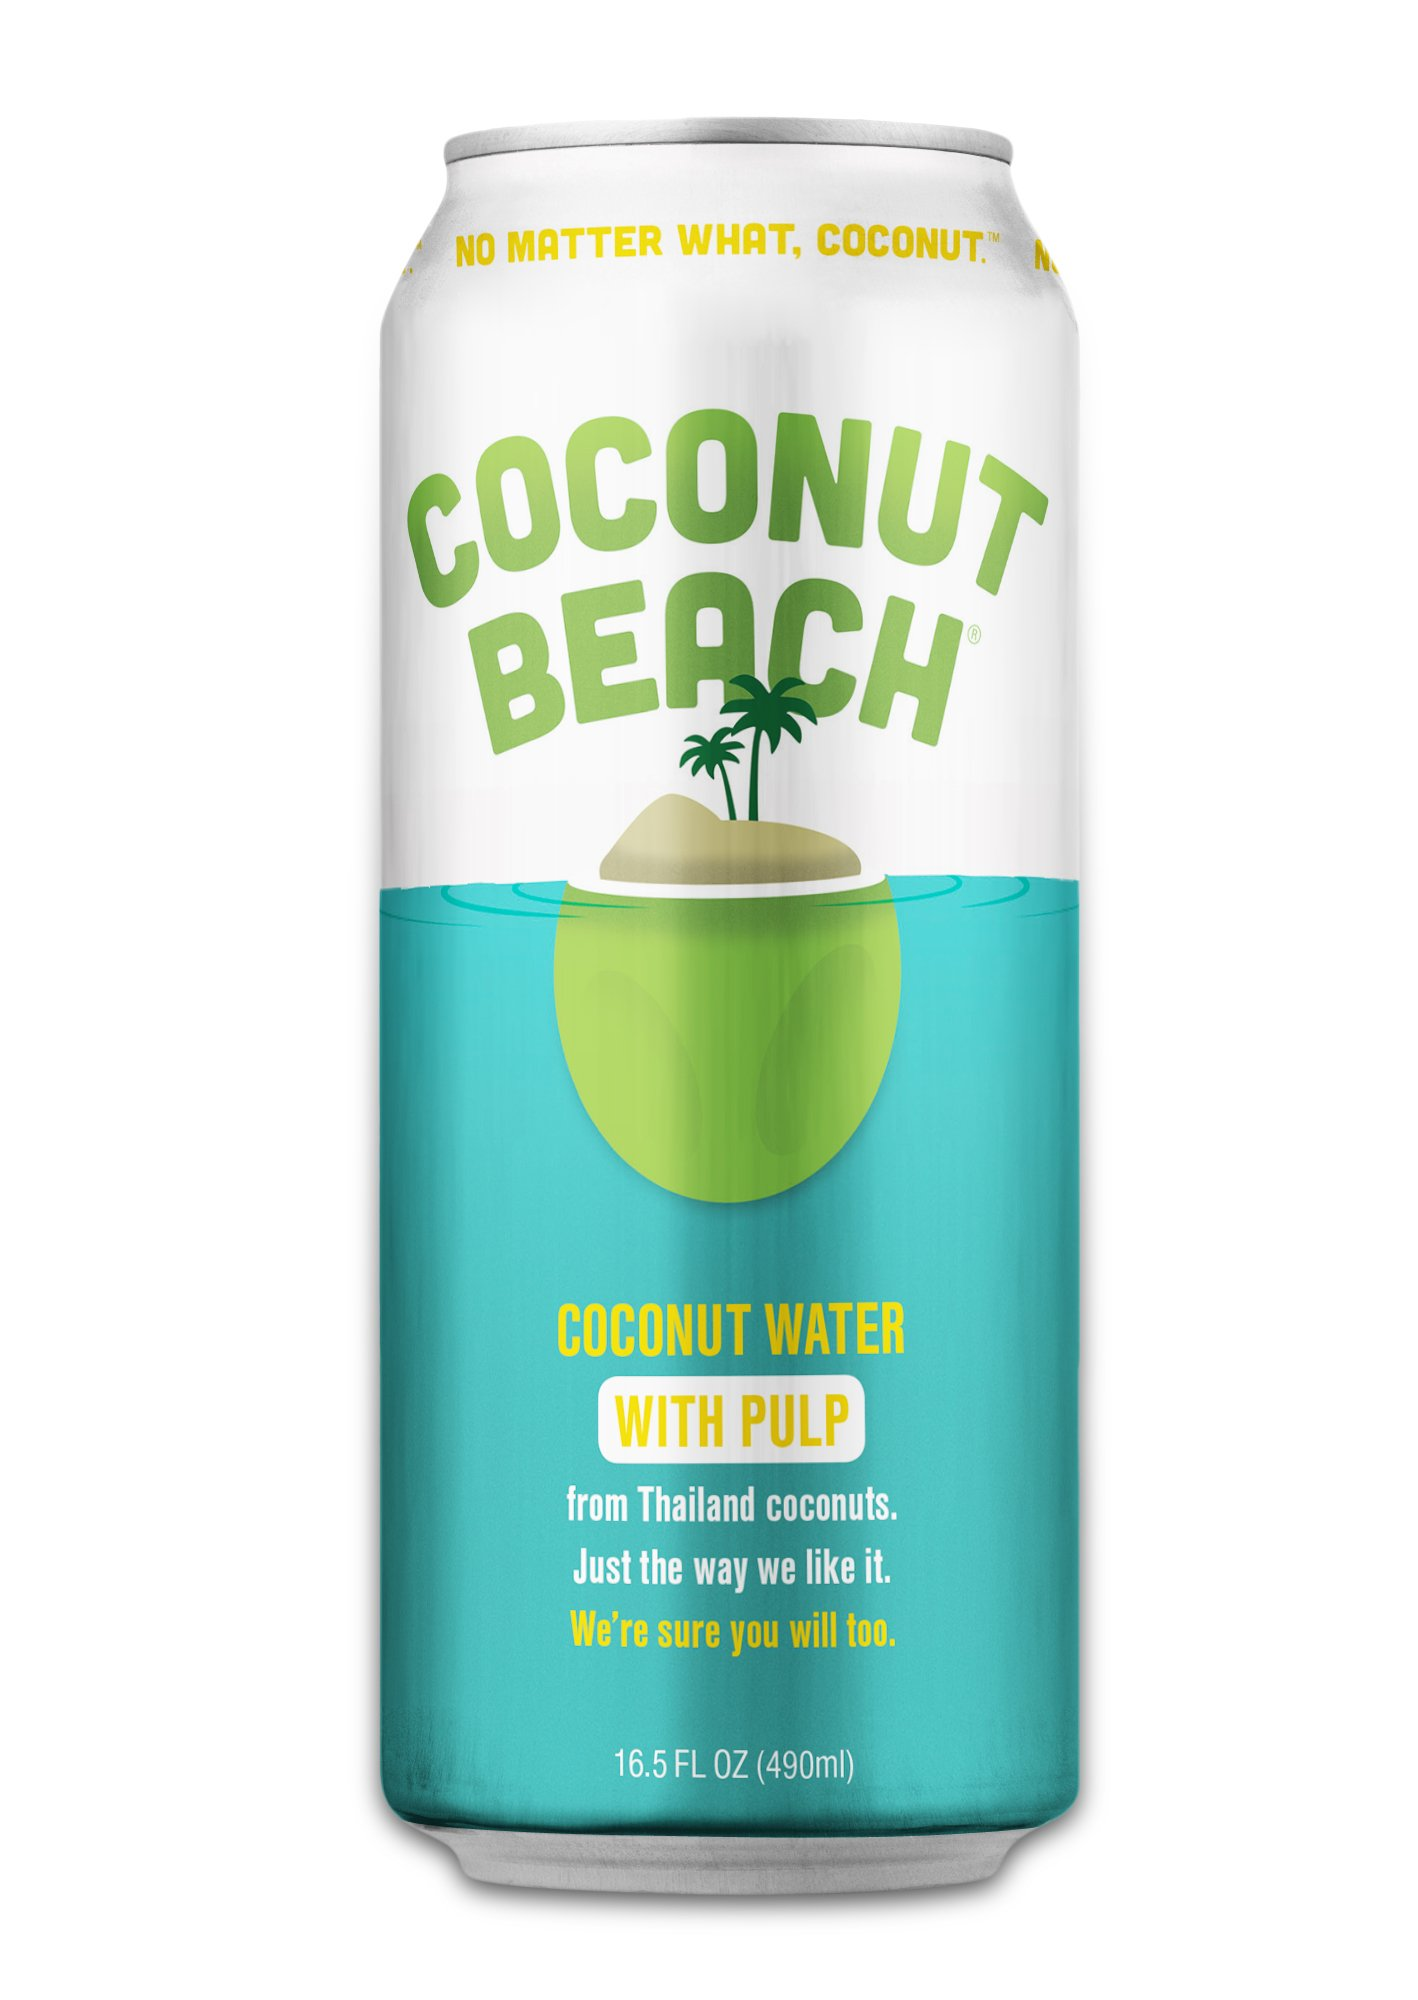 Coconut Beach Coconut Water With Pulp, 16.5 Ounce, (Count of 12)